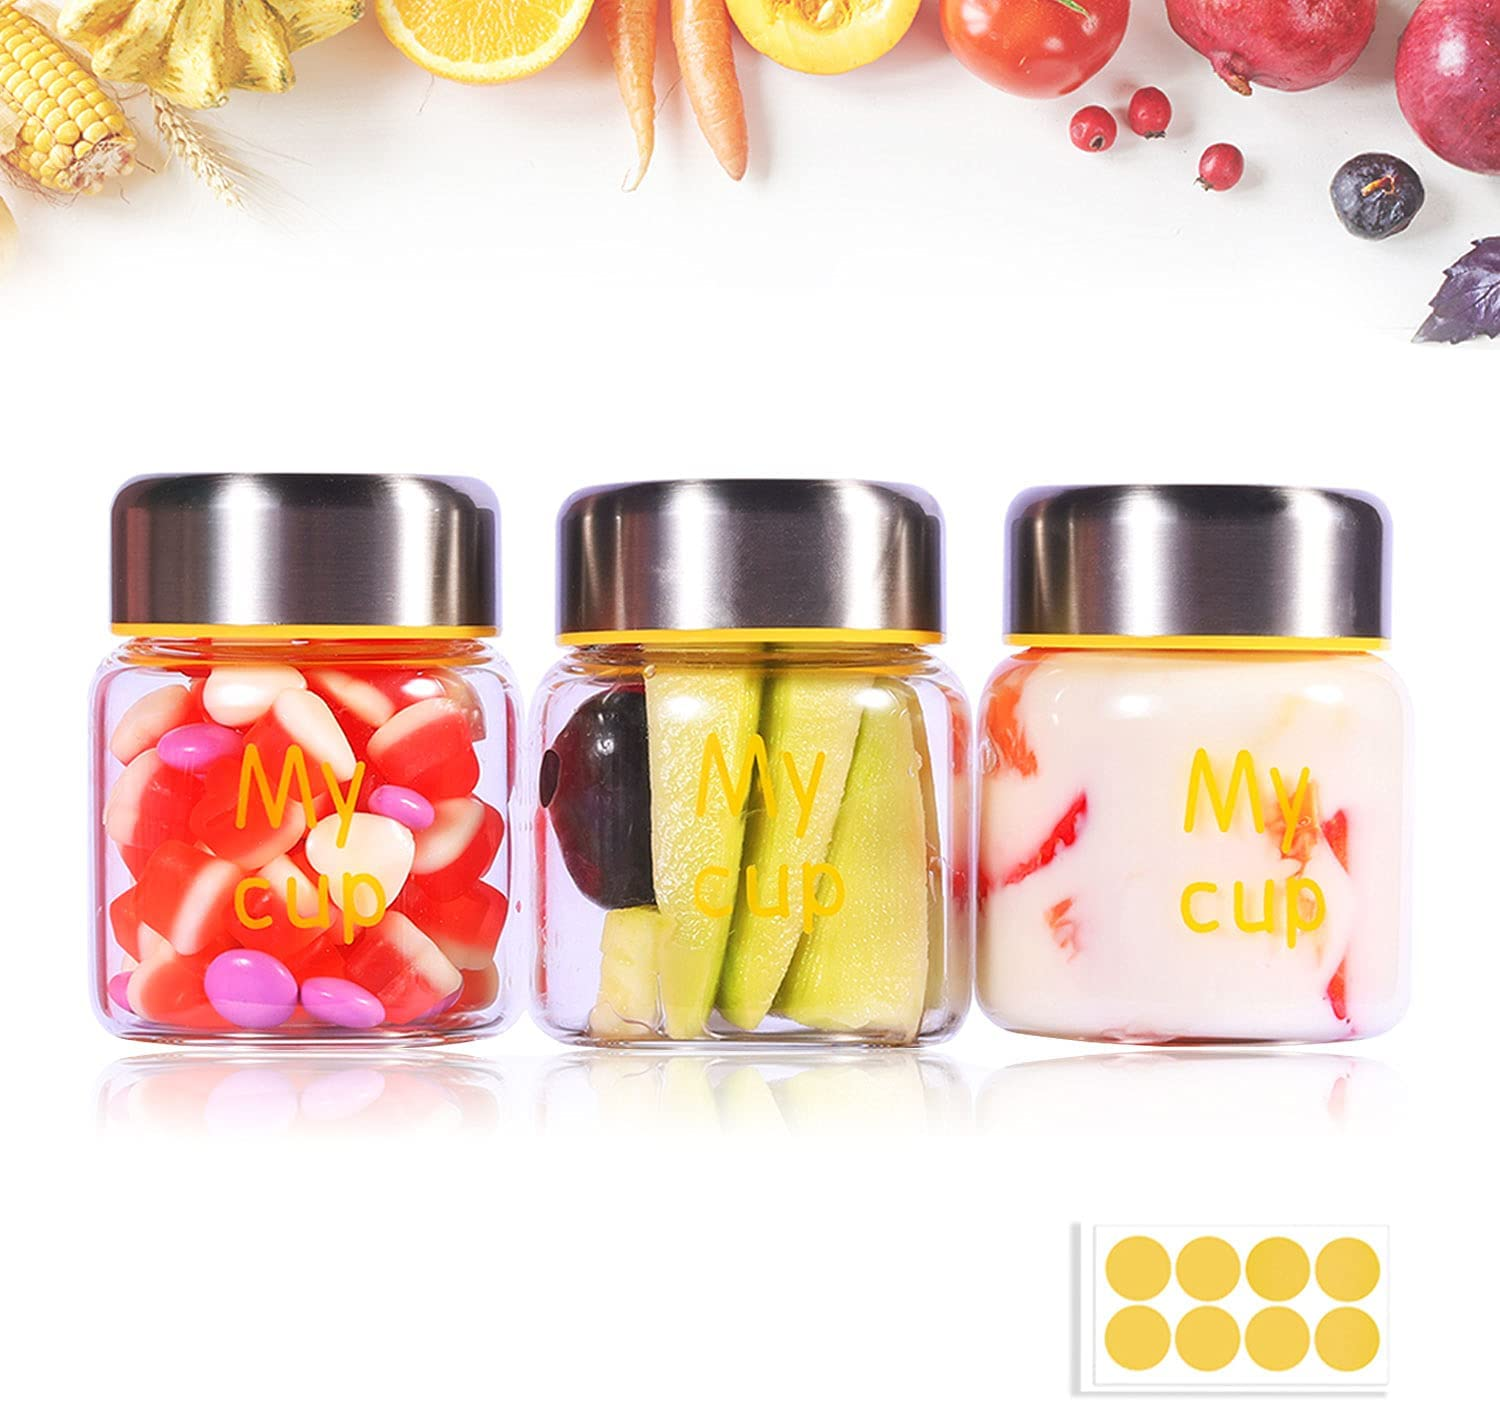 Kitchency 8oz Canning Jars Baby Food Storage Jars with lids Regular Mouth Storage Containers Spice Jars Ideal for Jam, Honey, Dessert Milk,Mousse,Candle Making